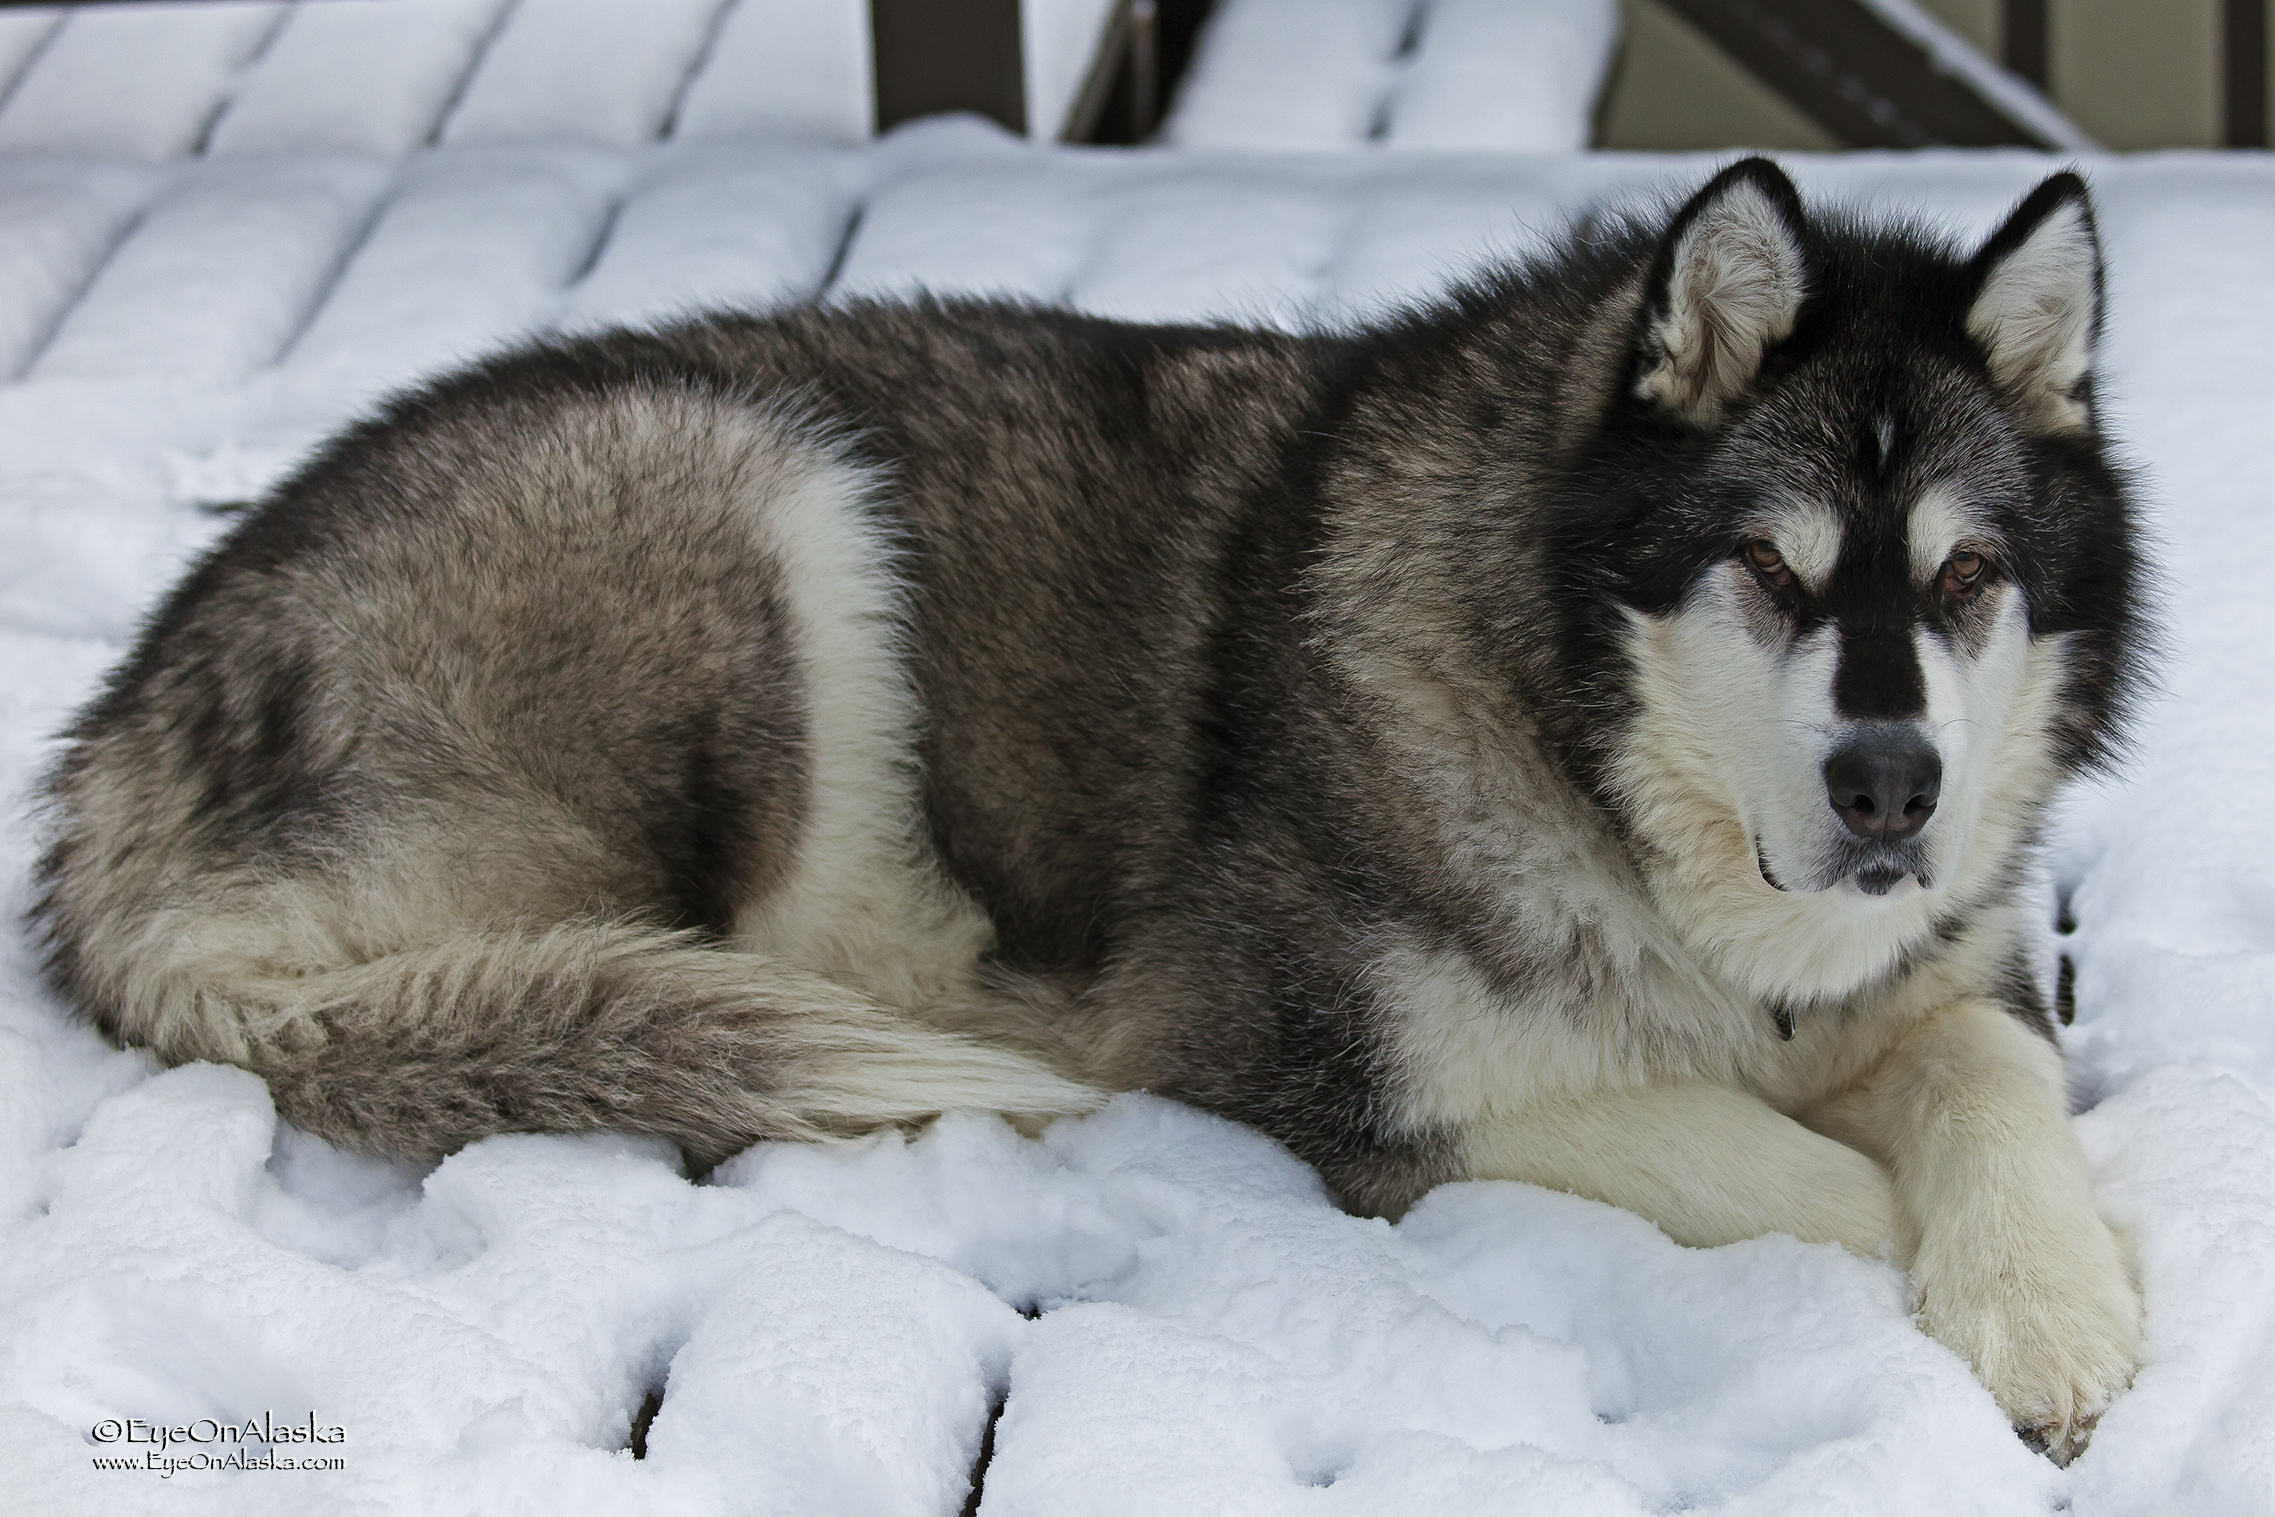 Xena is one very happy dog! There might be enough snow to take her down to the park and skijor on the soccer field.